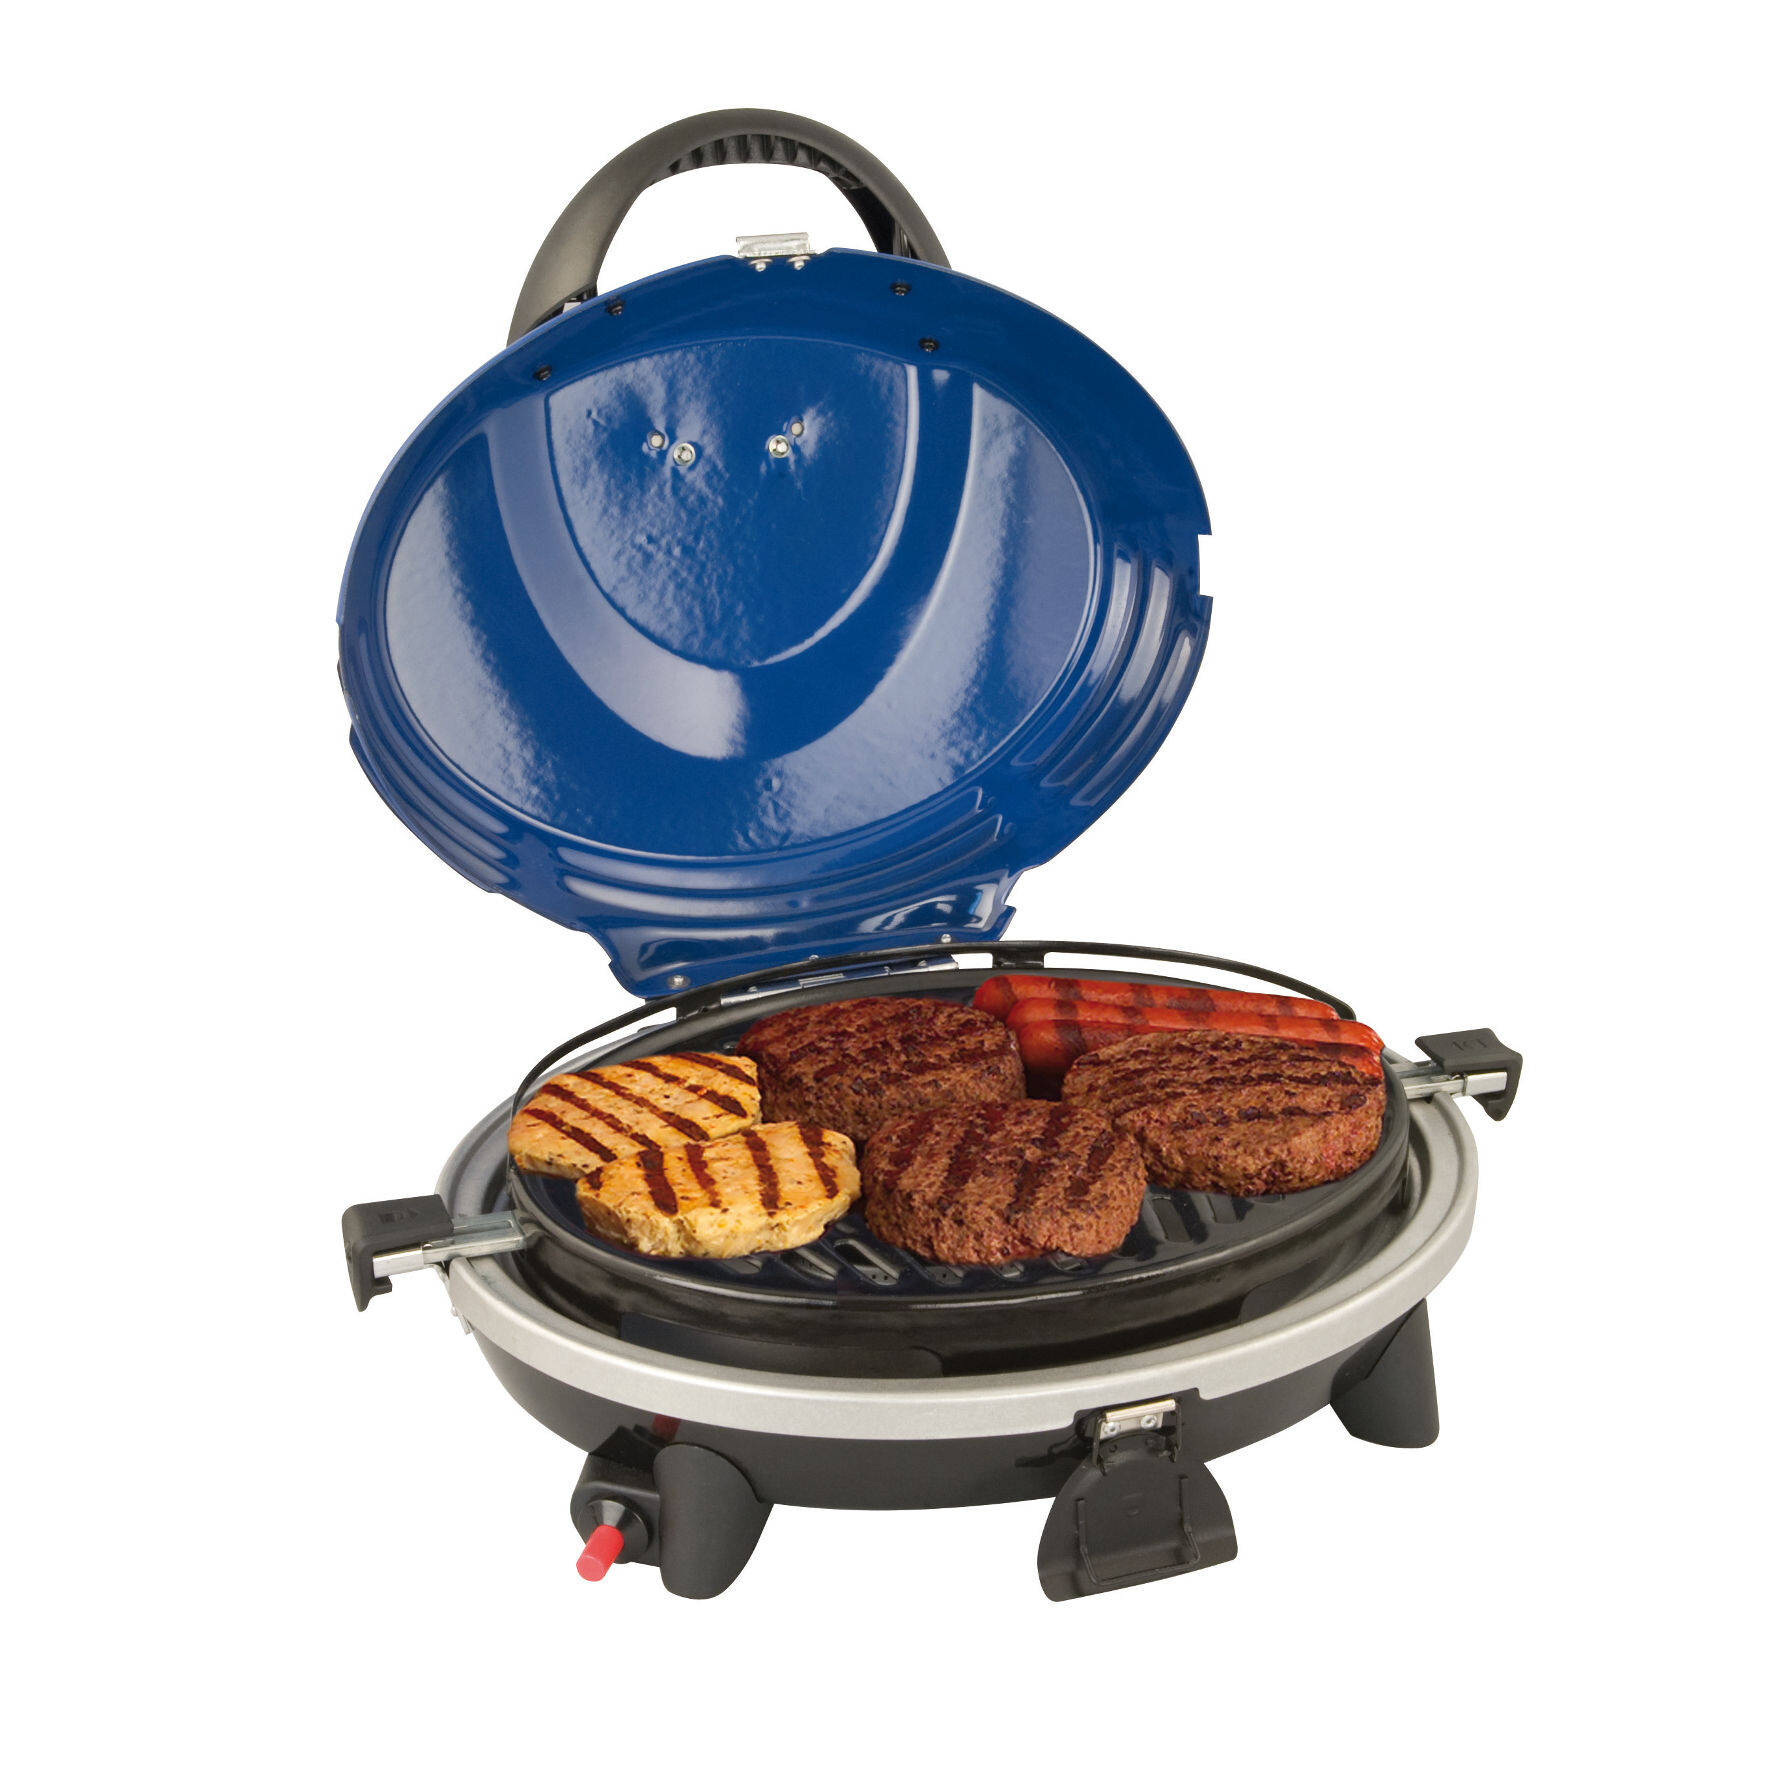 Campinggaz Grill Campingaz 3 In 1 Grill Campz Ch